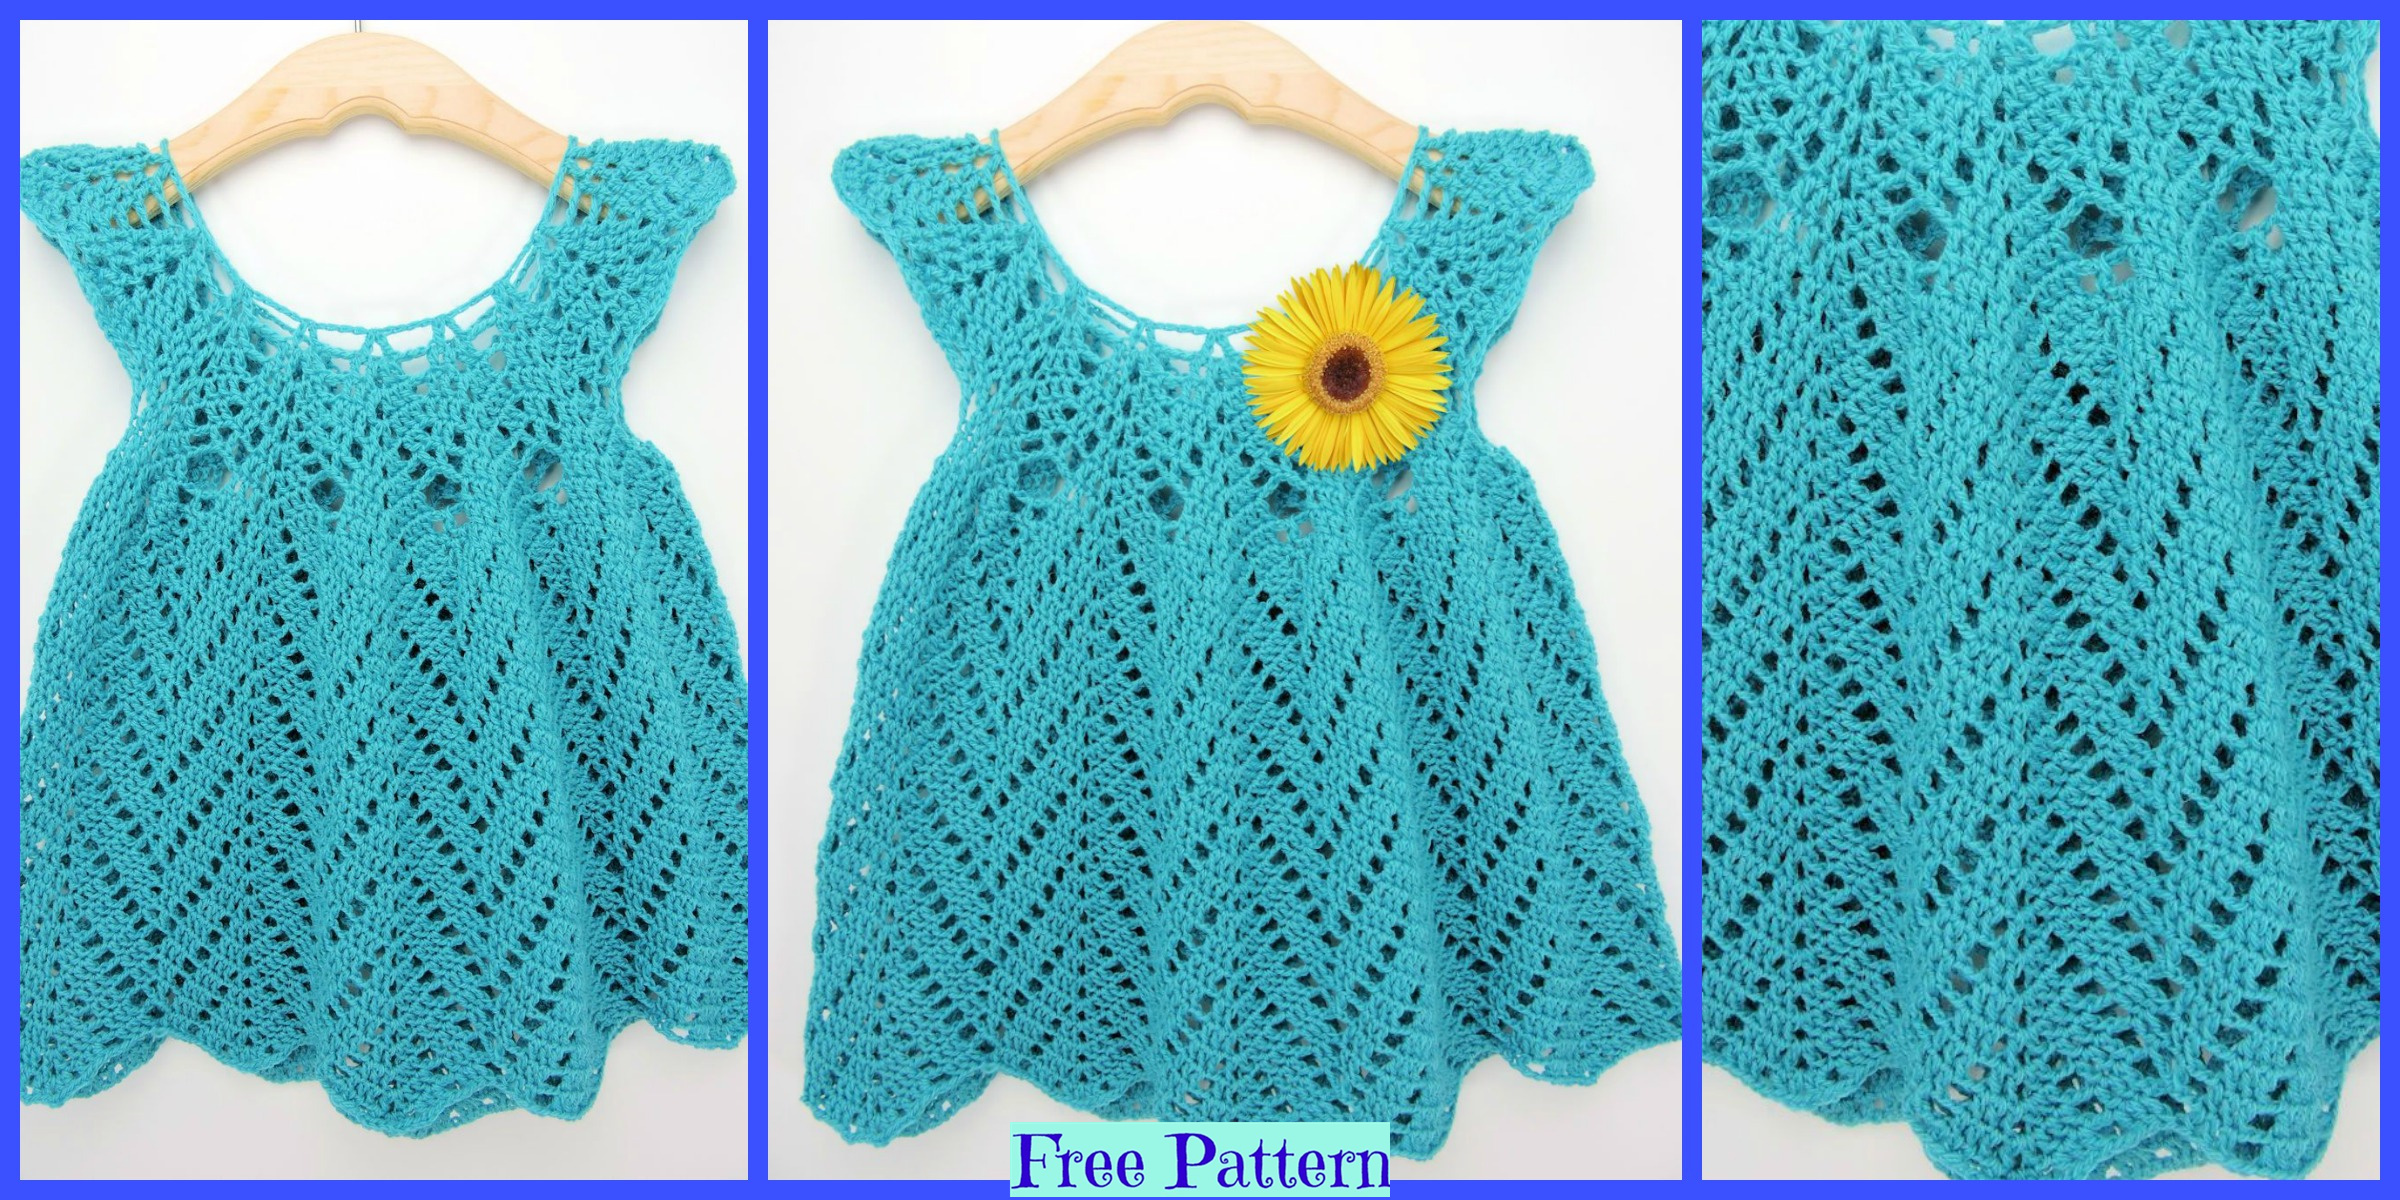 Crochet Chevron Baby Dress – Free Pattern